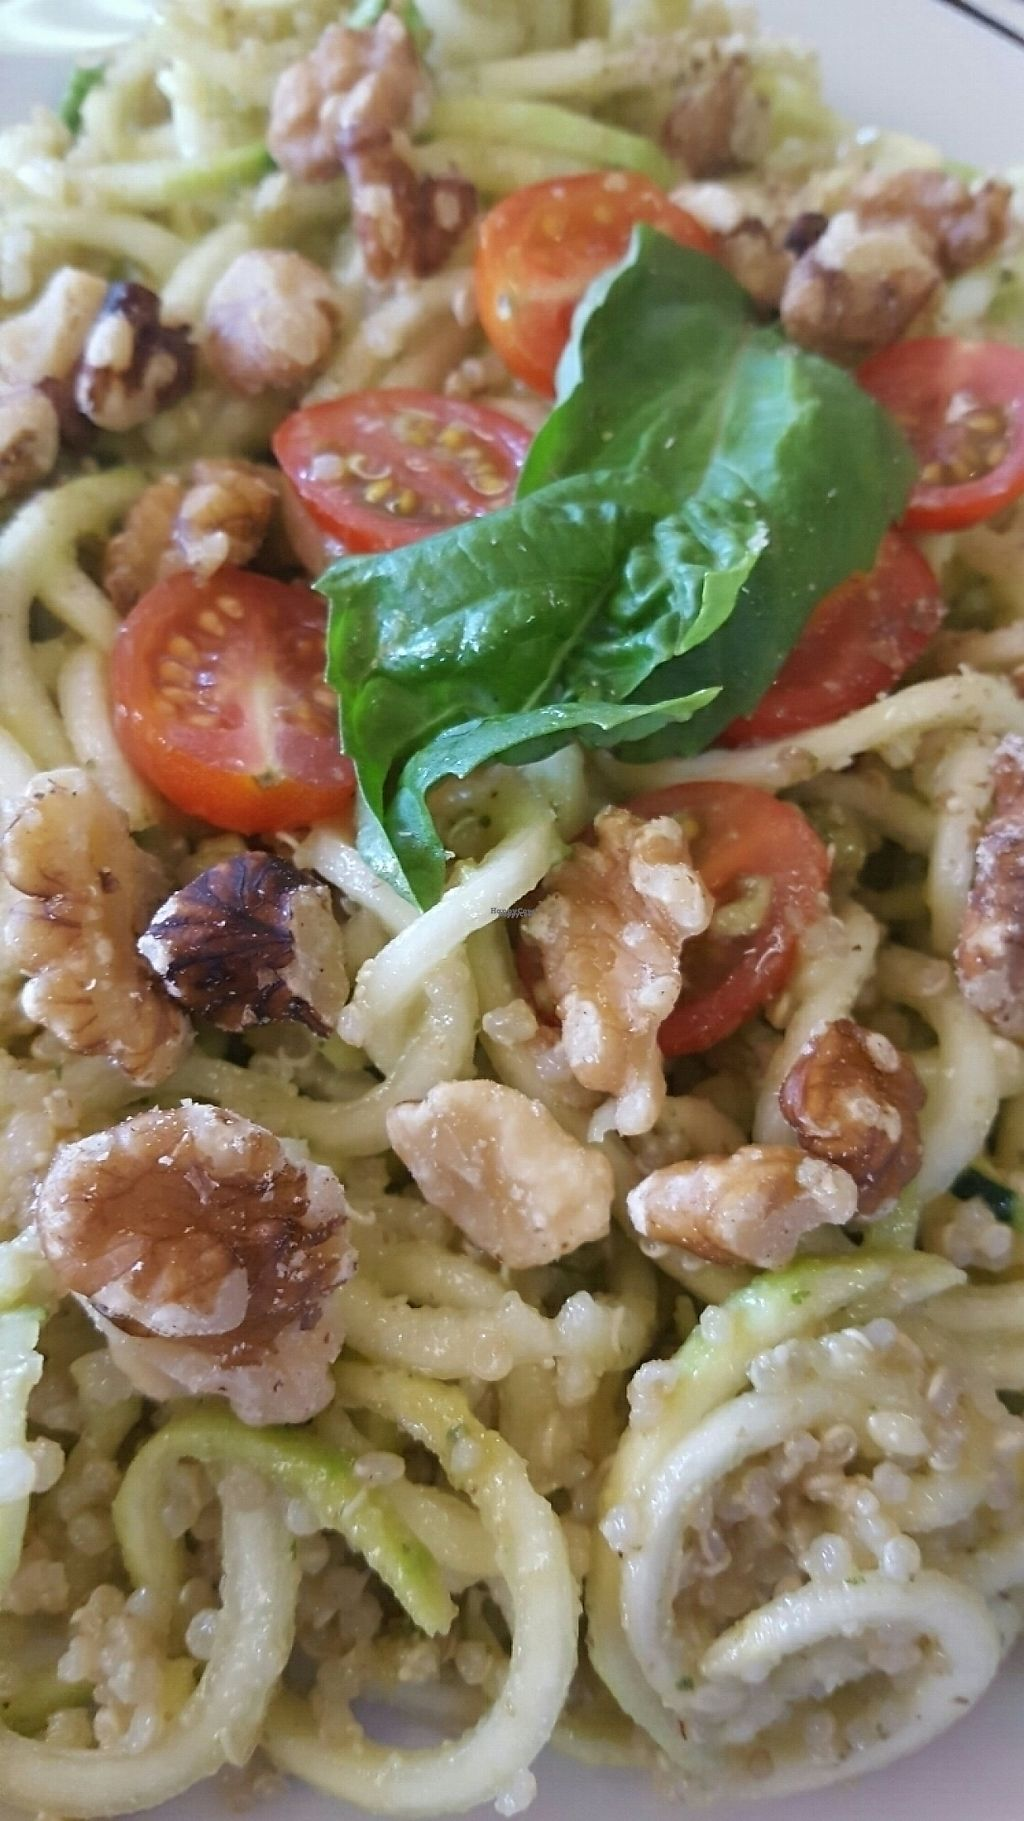 "Photo of Coconut Hut  by <a href=""/members/profile/missmaryxjane"">missmaryxjane</a> <br/>Zucchini Pasta with Walnut Pesto <br/> March 8, 2017  - <a href='/contact/abuse/image/73194/234076'>Report</a>"